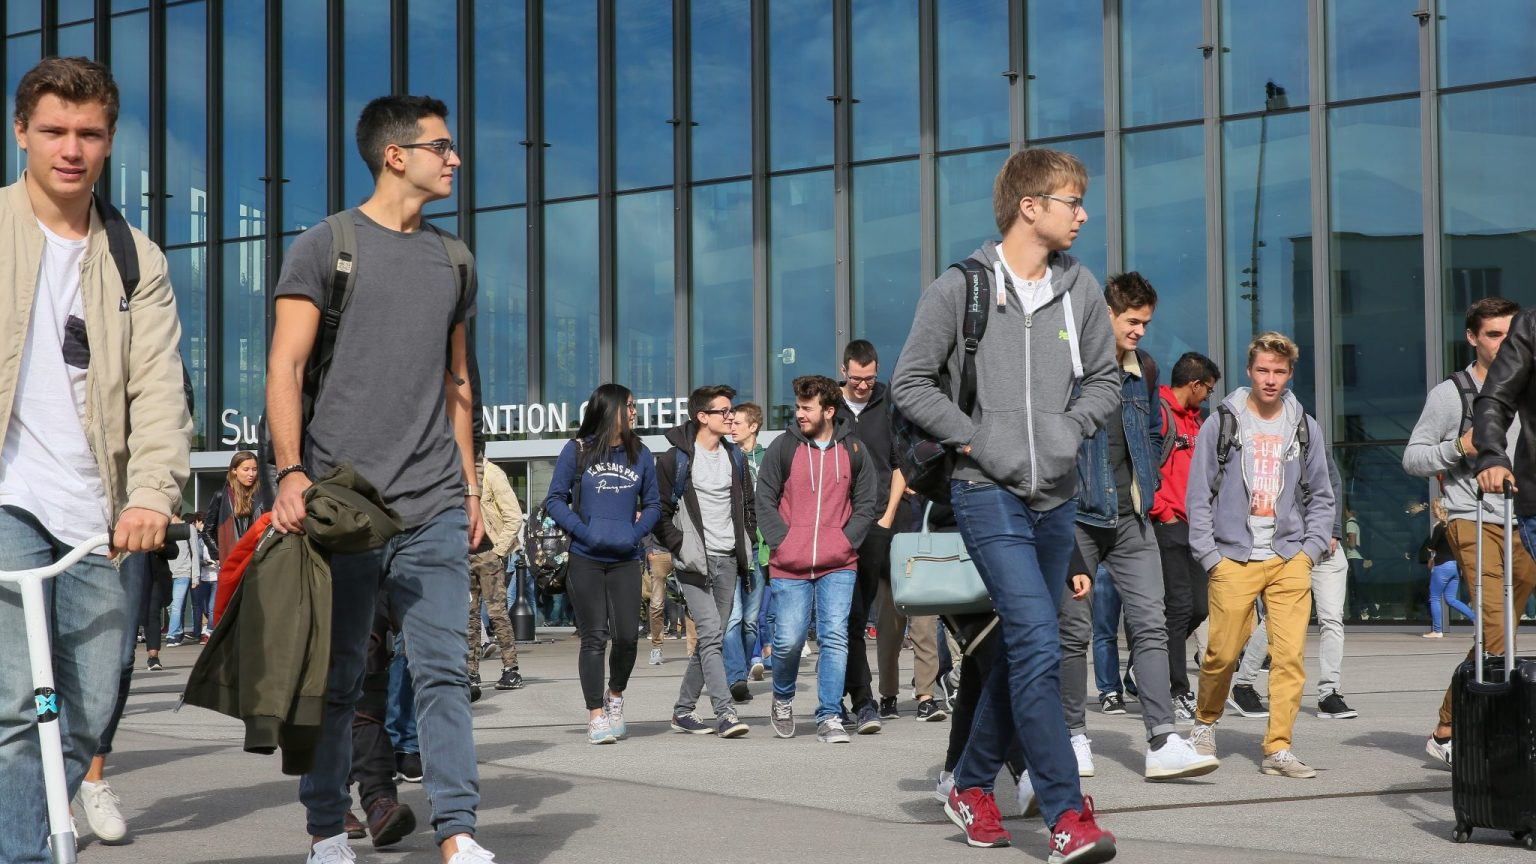 Des étudiants sortant du Swisstech Convention Center lors de la rentrée 2017